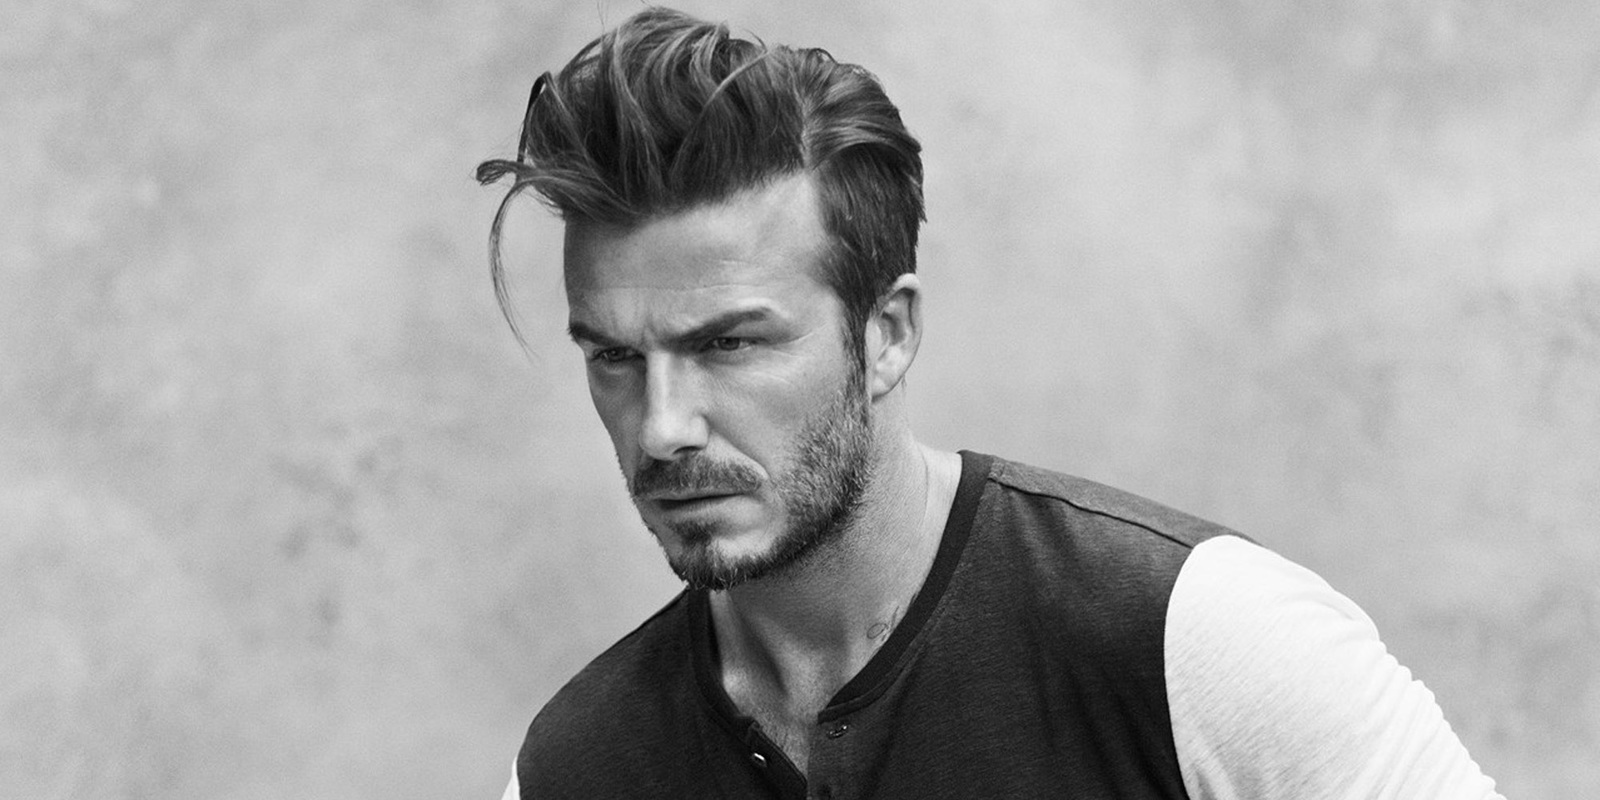 Image result for esquire beckham haircut